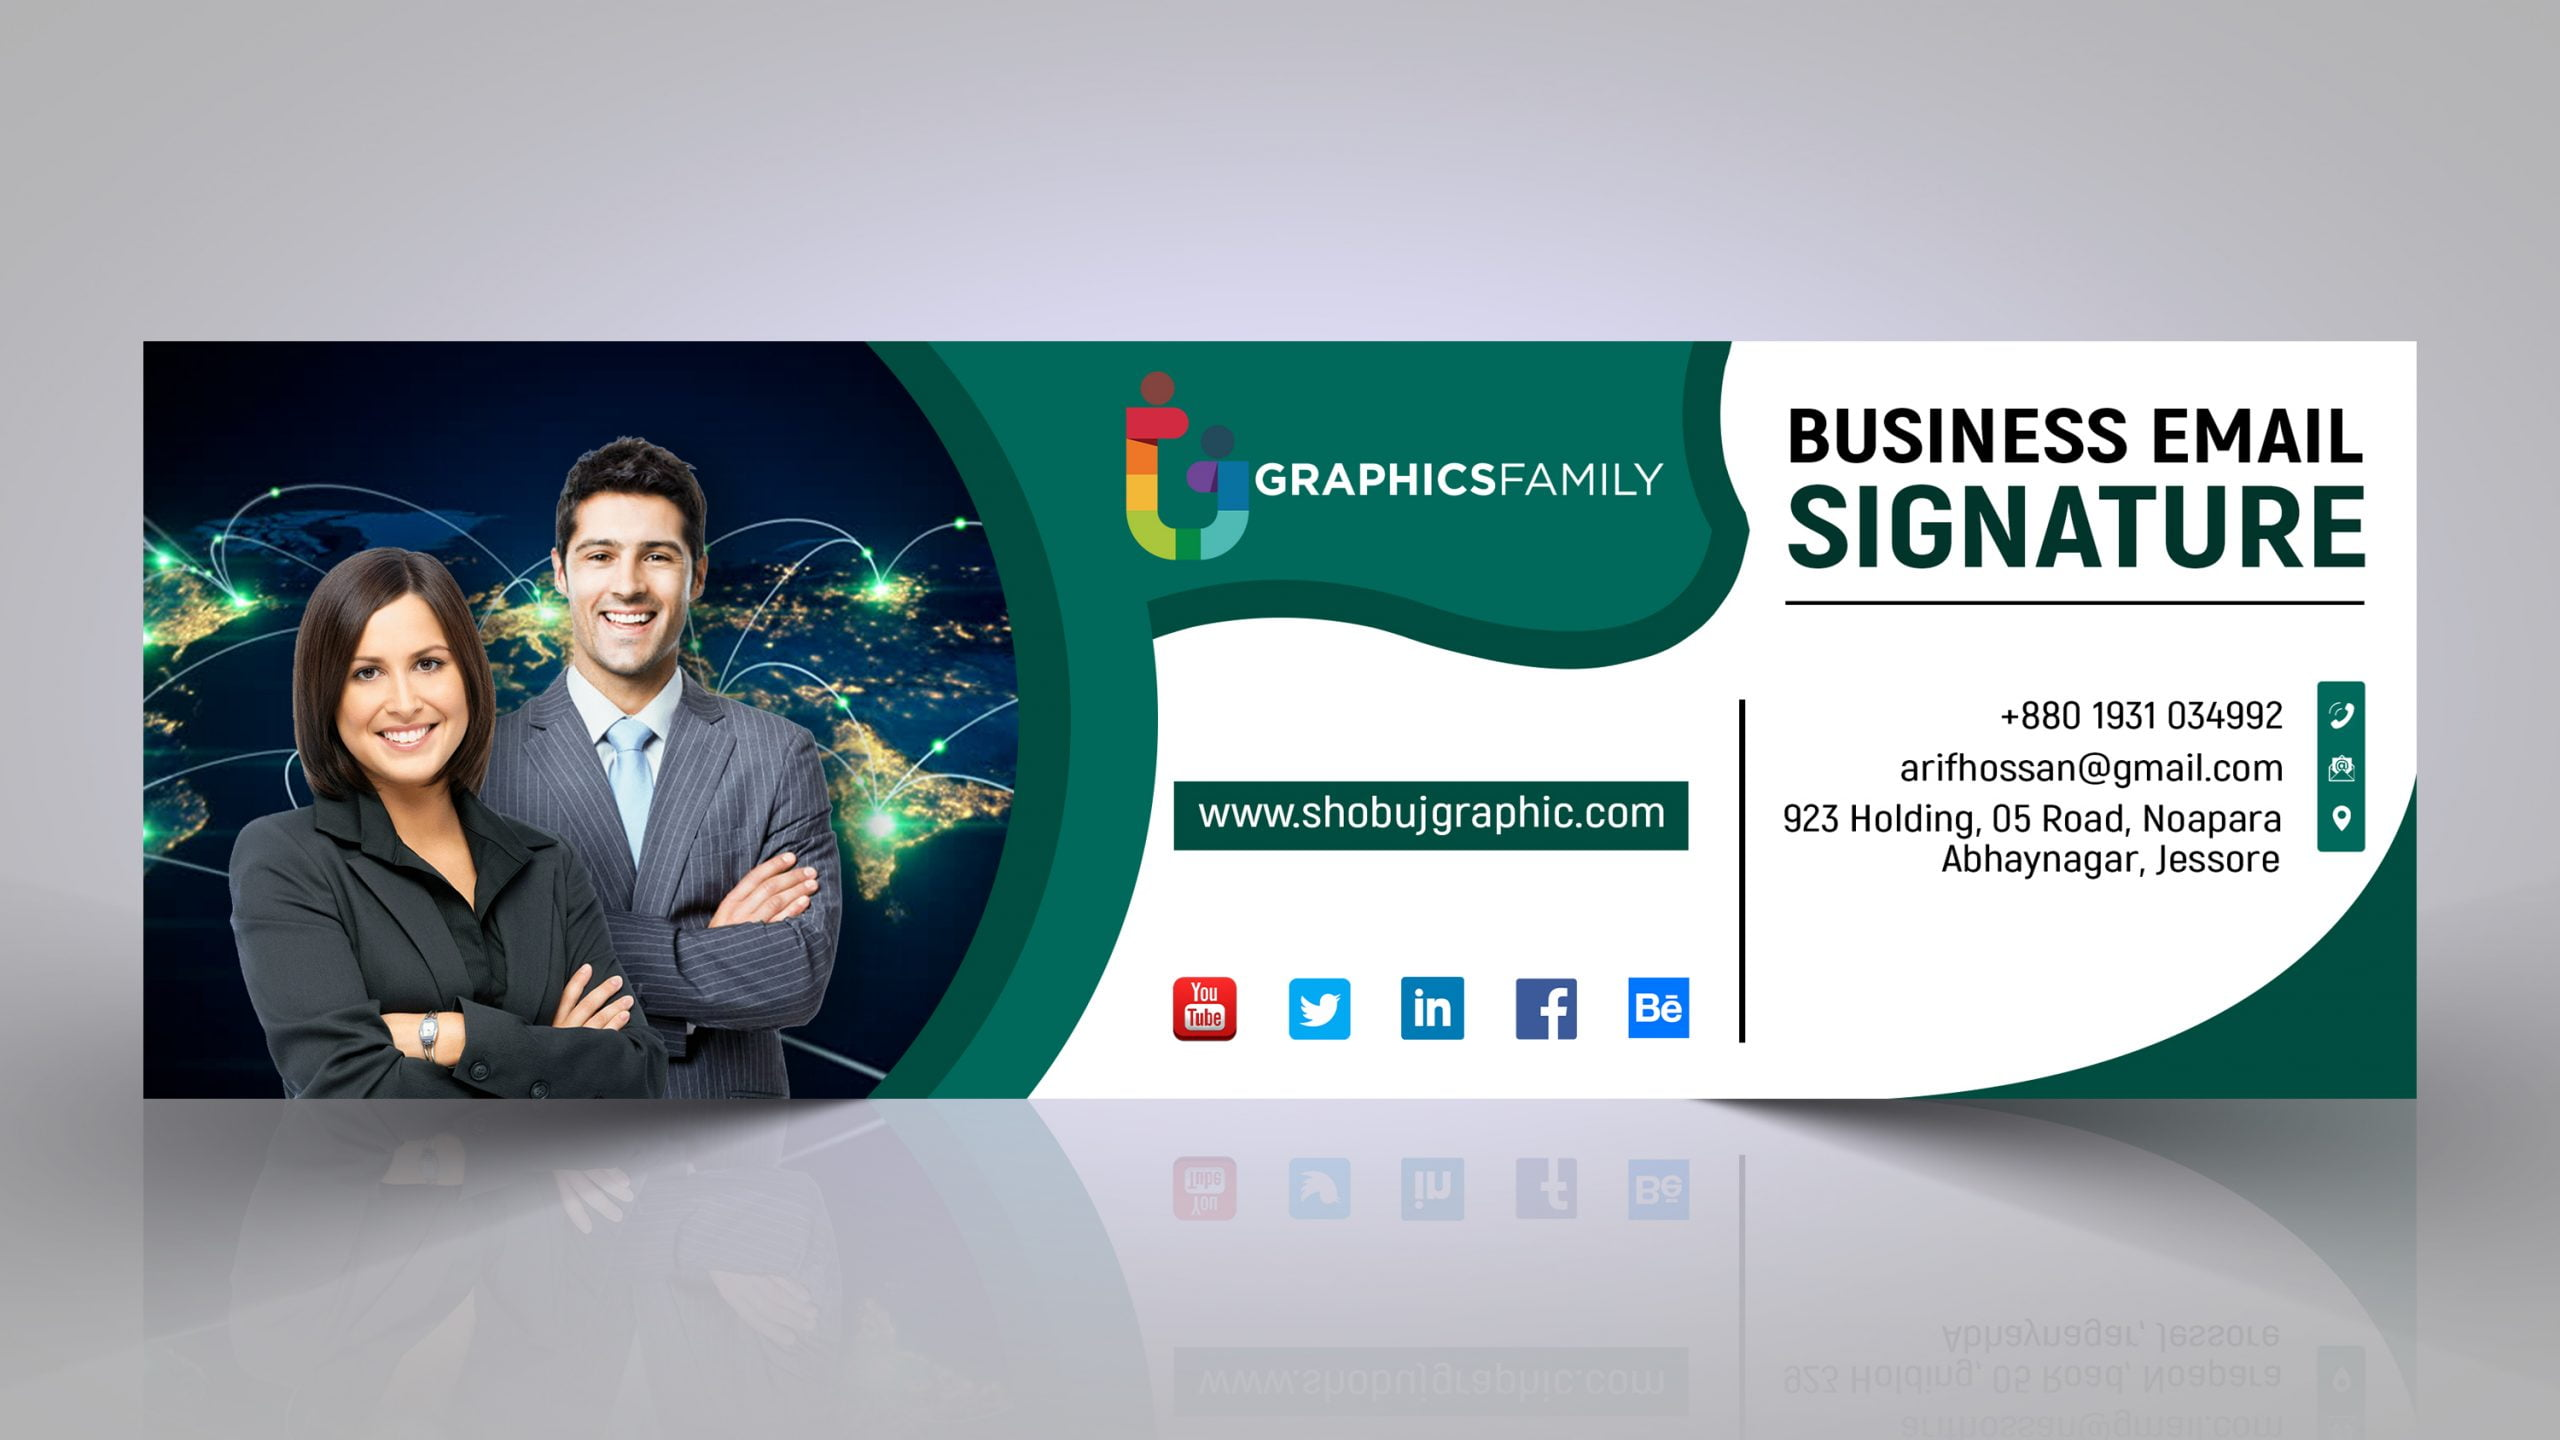 Email signature in flat style presentation